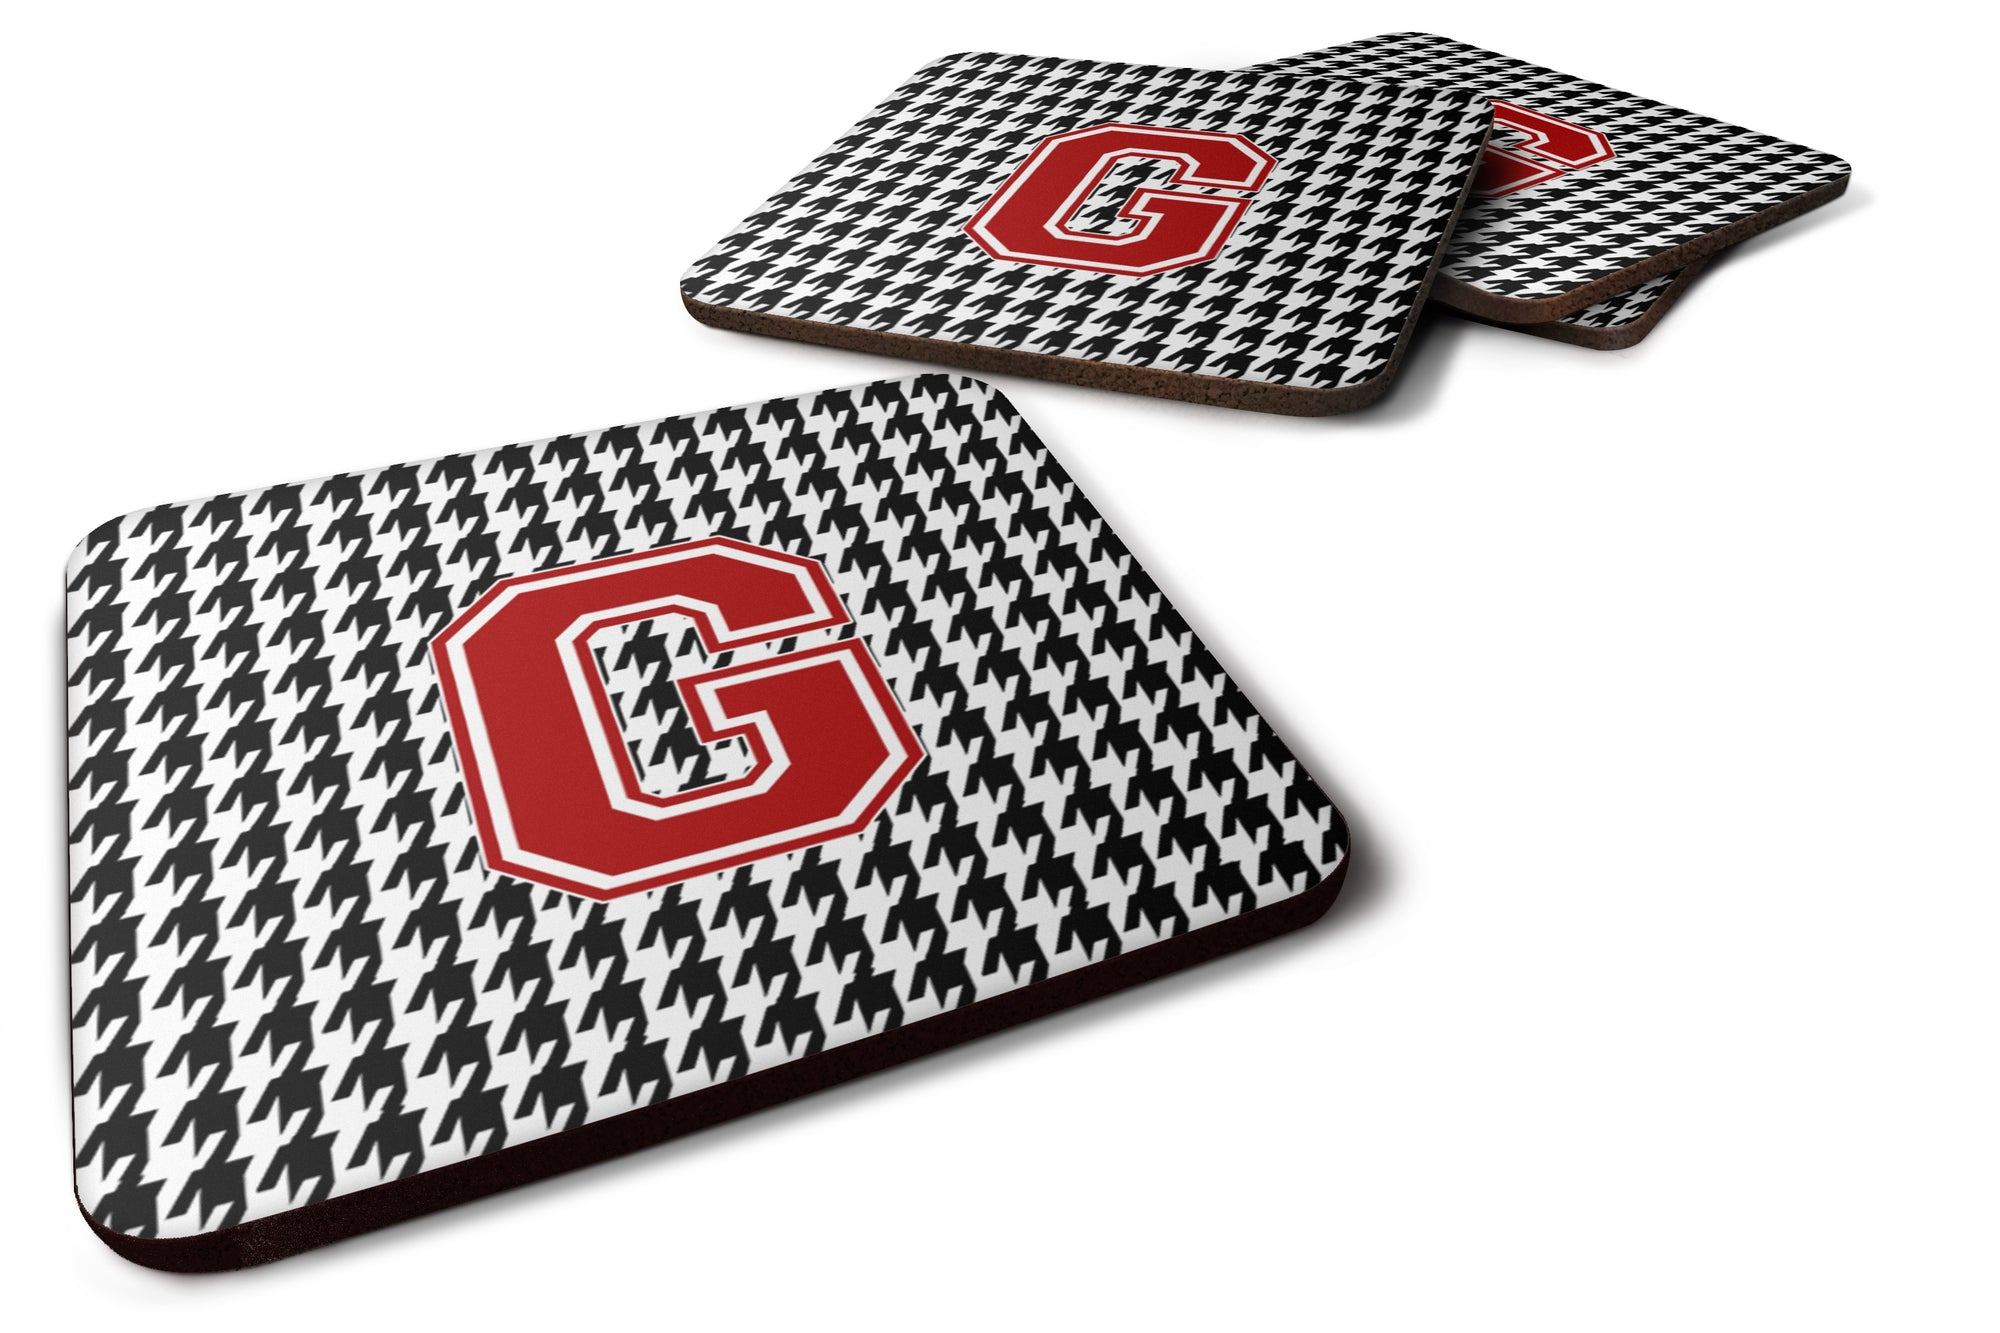 Set of 4 Monogram - Houndstooth Foam Coasters Initial G by Caroline's Treasures